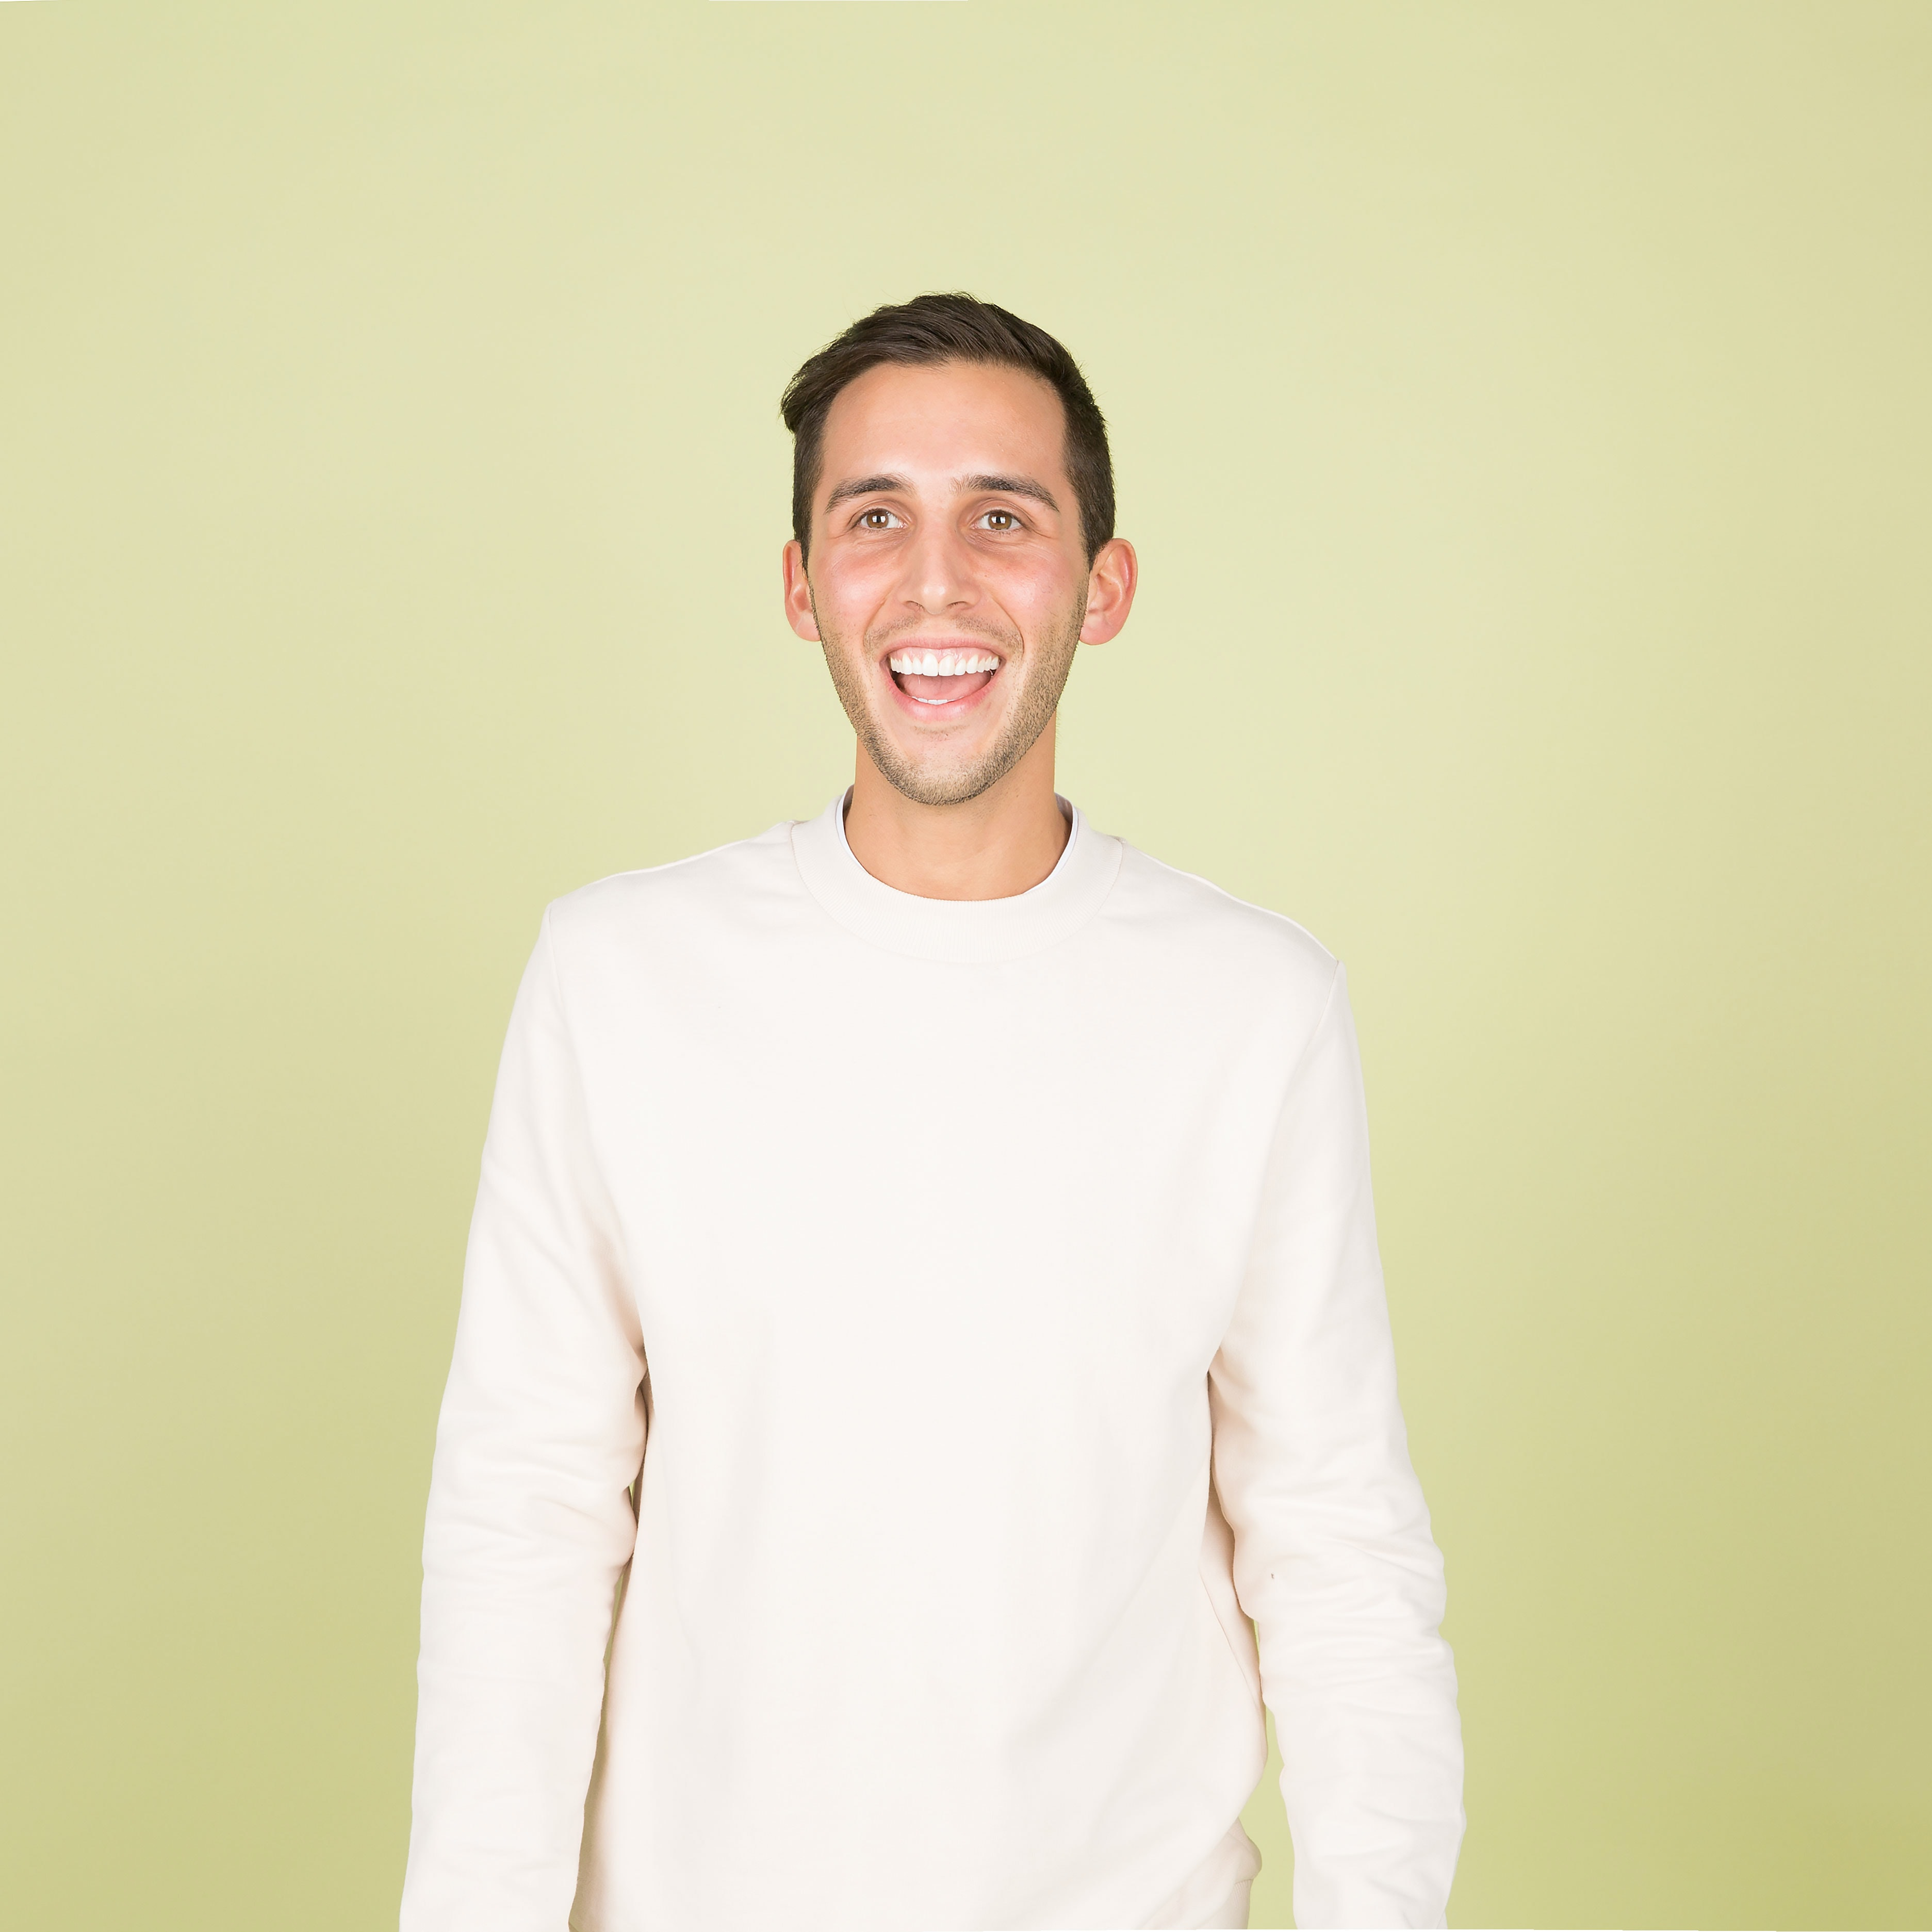 man wearing white crew-neck long-sleeved shirt standing inside well lighted room